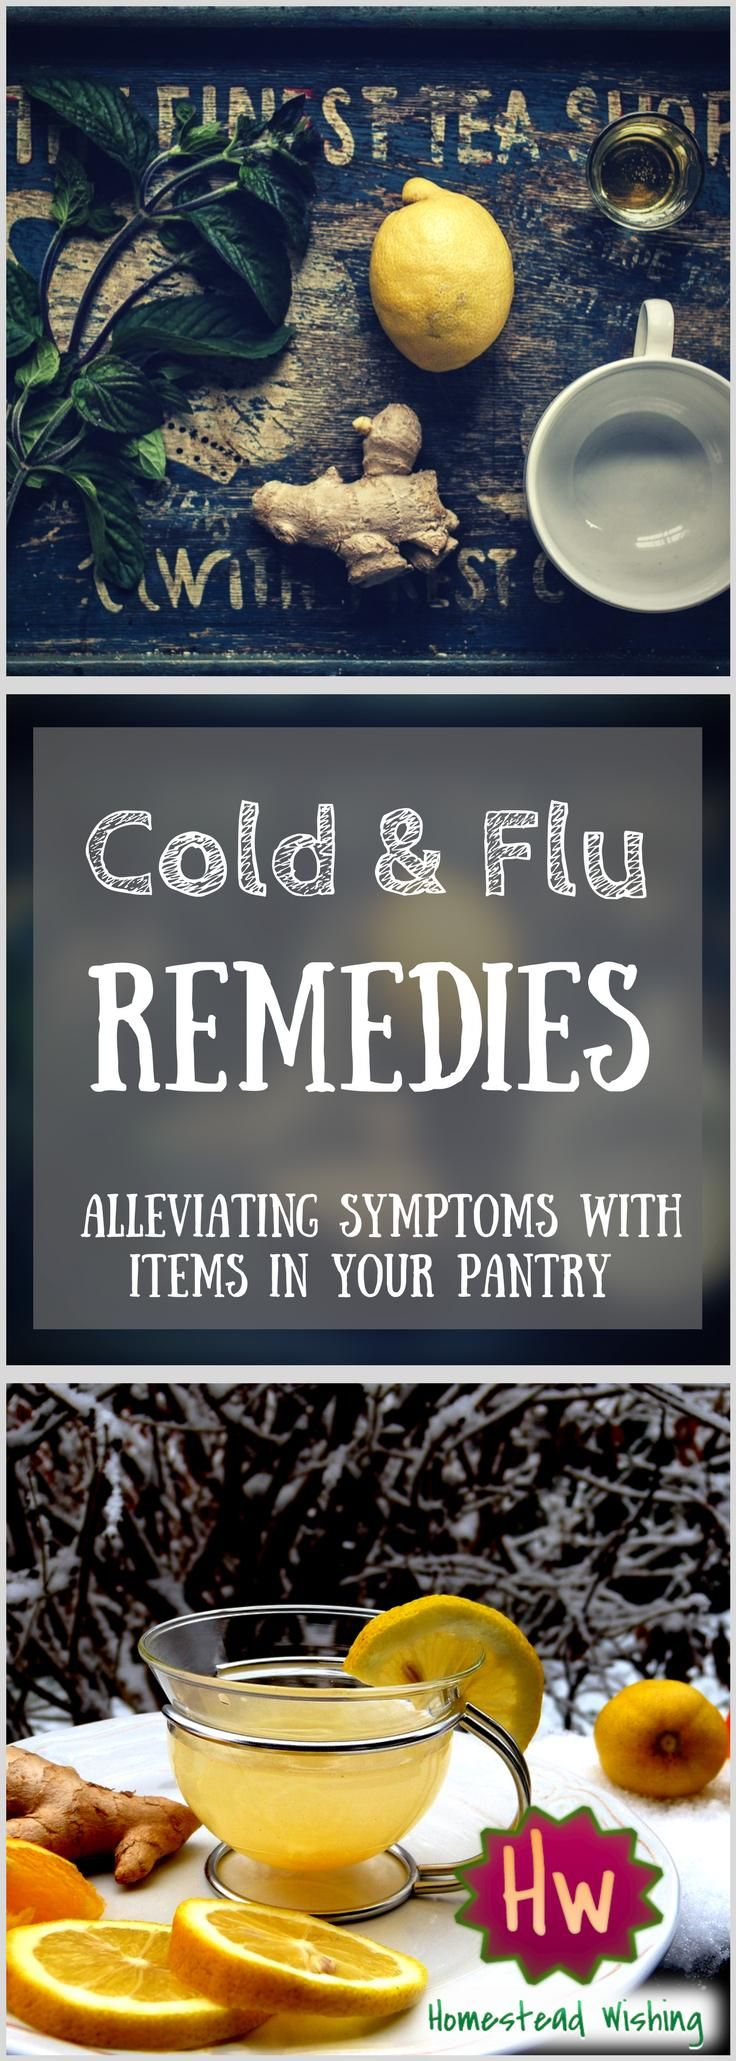 Cold and Flu Remedies. Help Alleviate your symptoms with items found in your pantry. What do you do when you have a cold or the flu? Let's talk about feeling better when being sick. | Homestead Wishing, Author Kristi Wheeler | http://homesteadwishing.com/cold-and-flu-remedies/ |